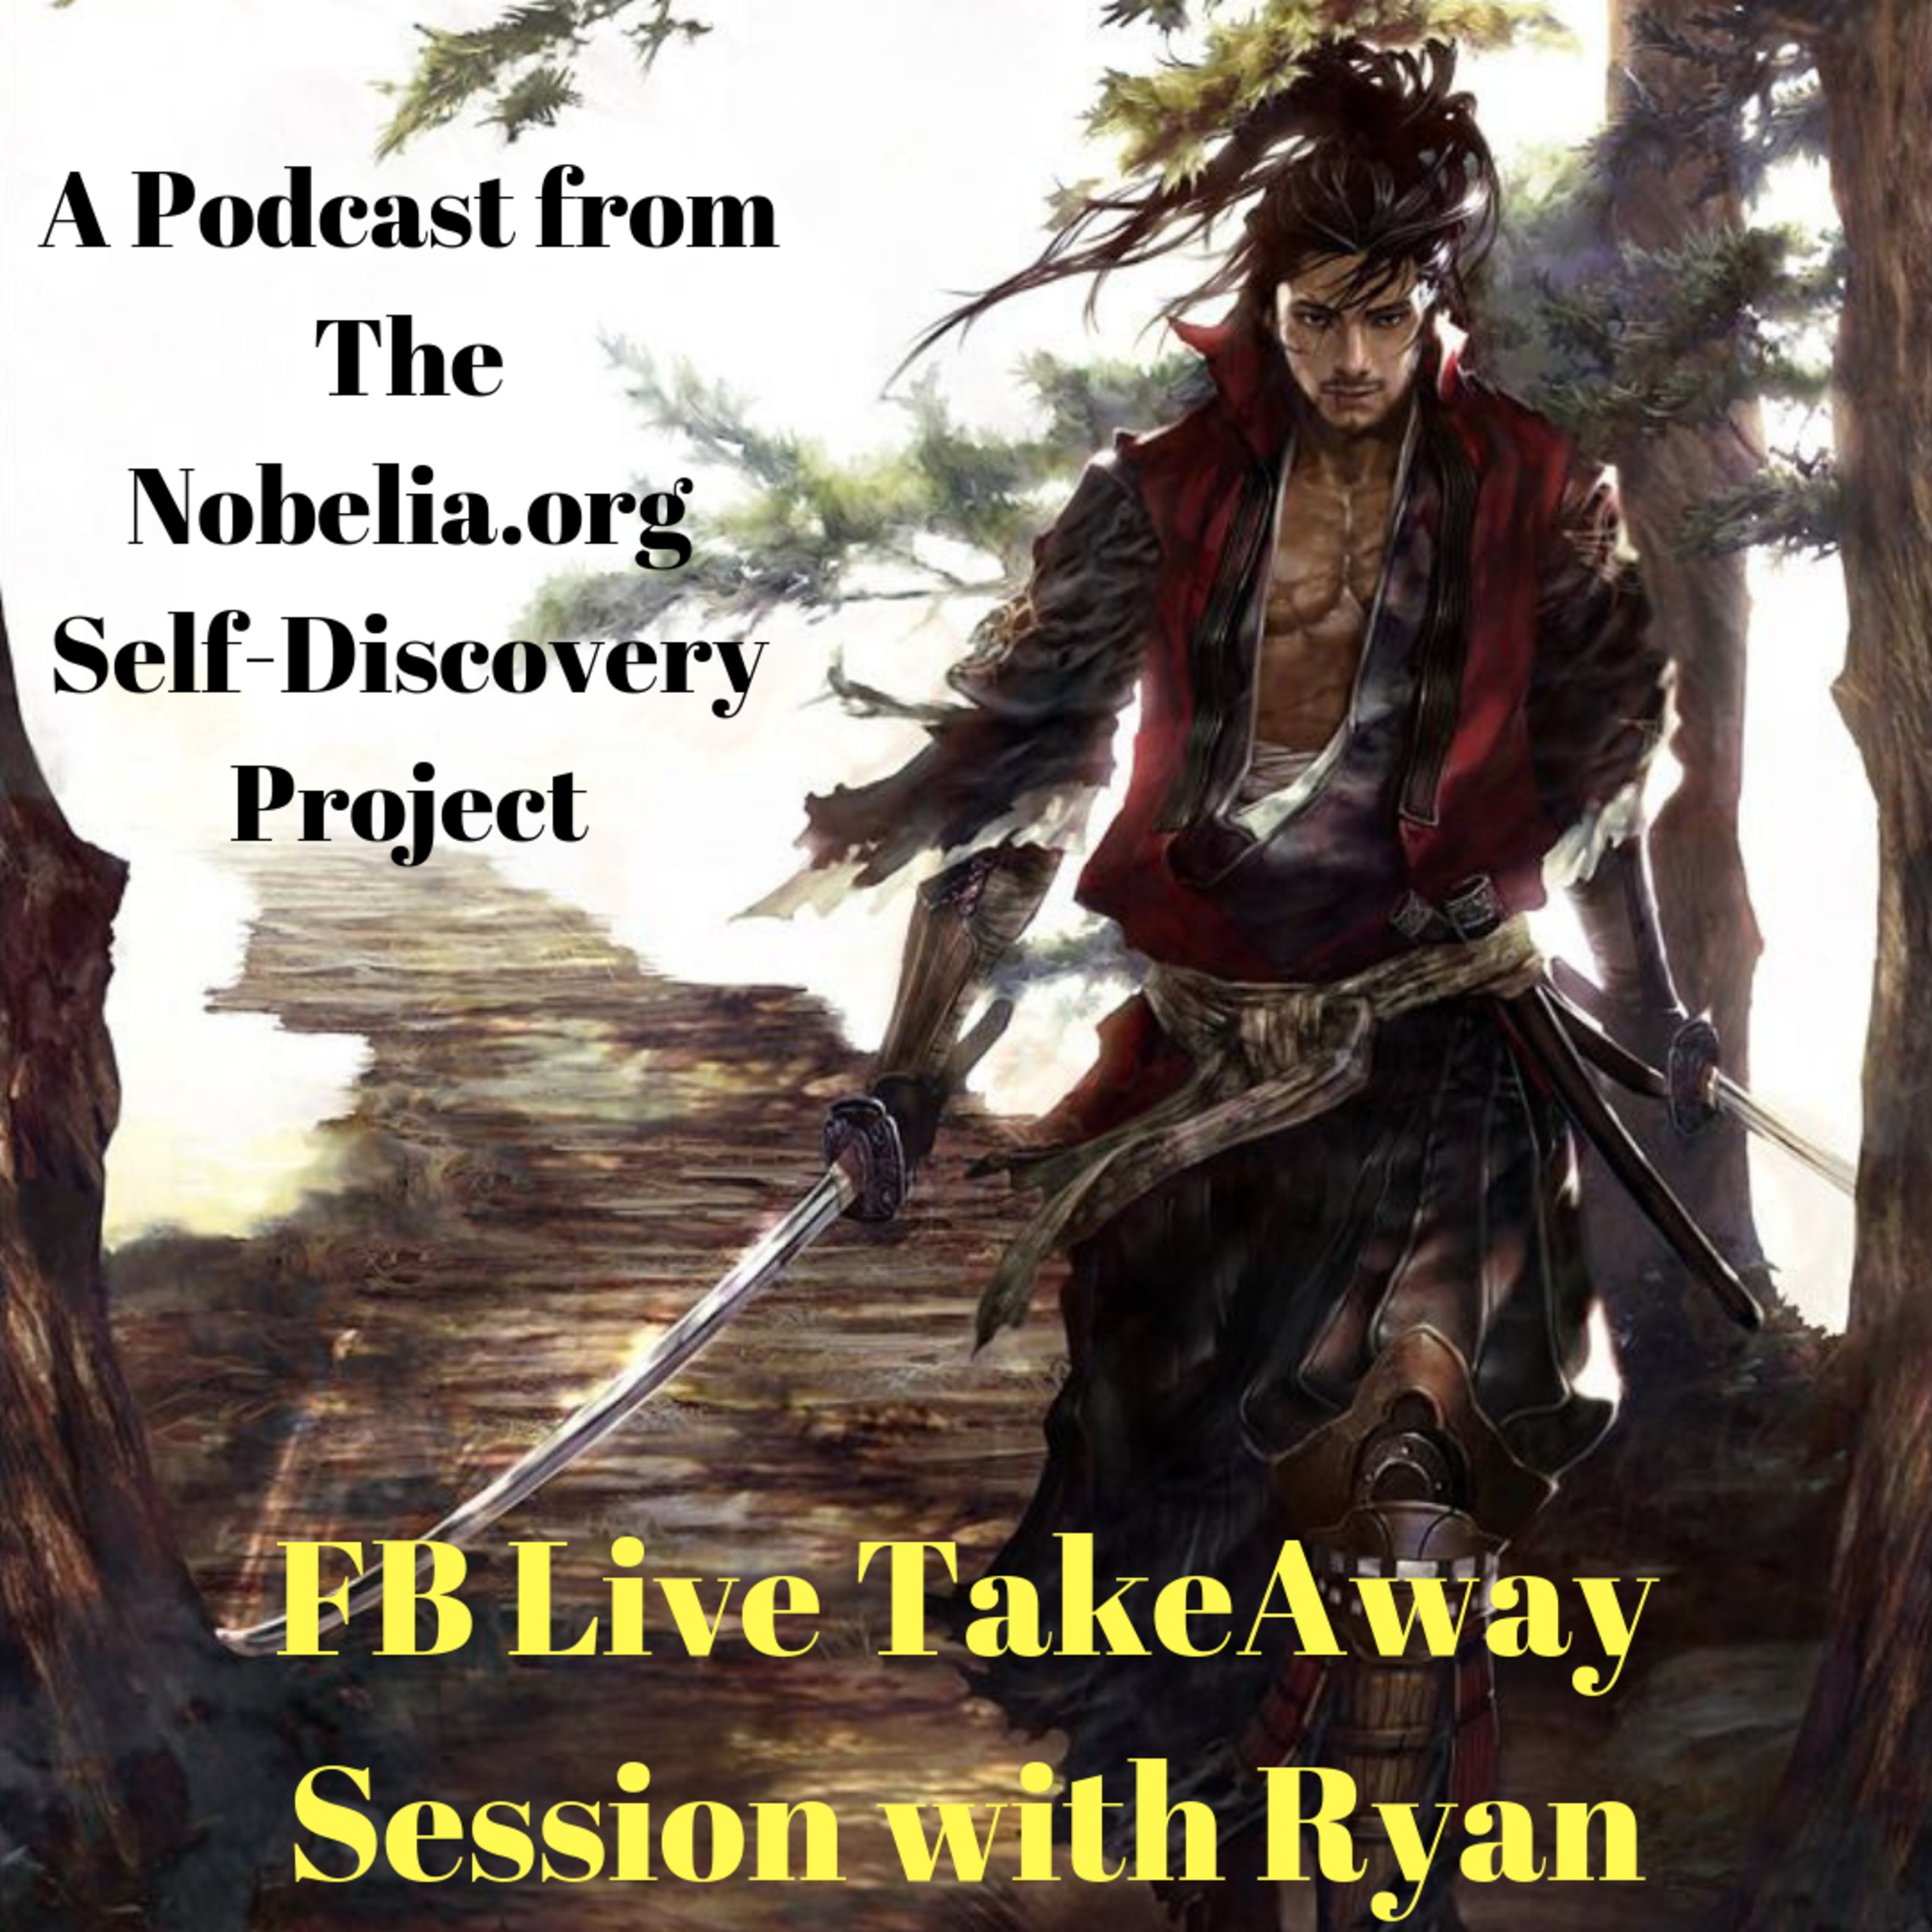 FB Live TakeAway Session with Ryan June 9 2019